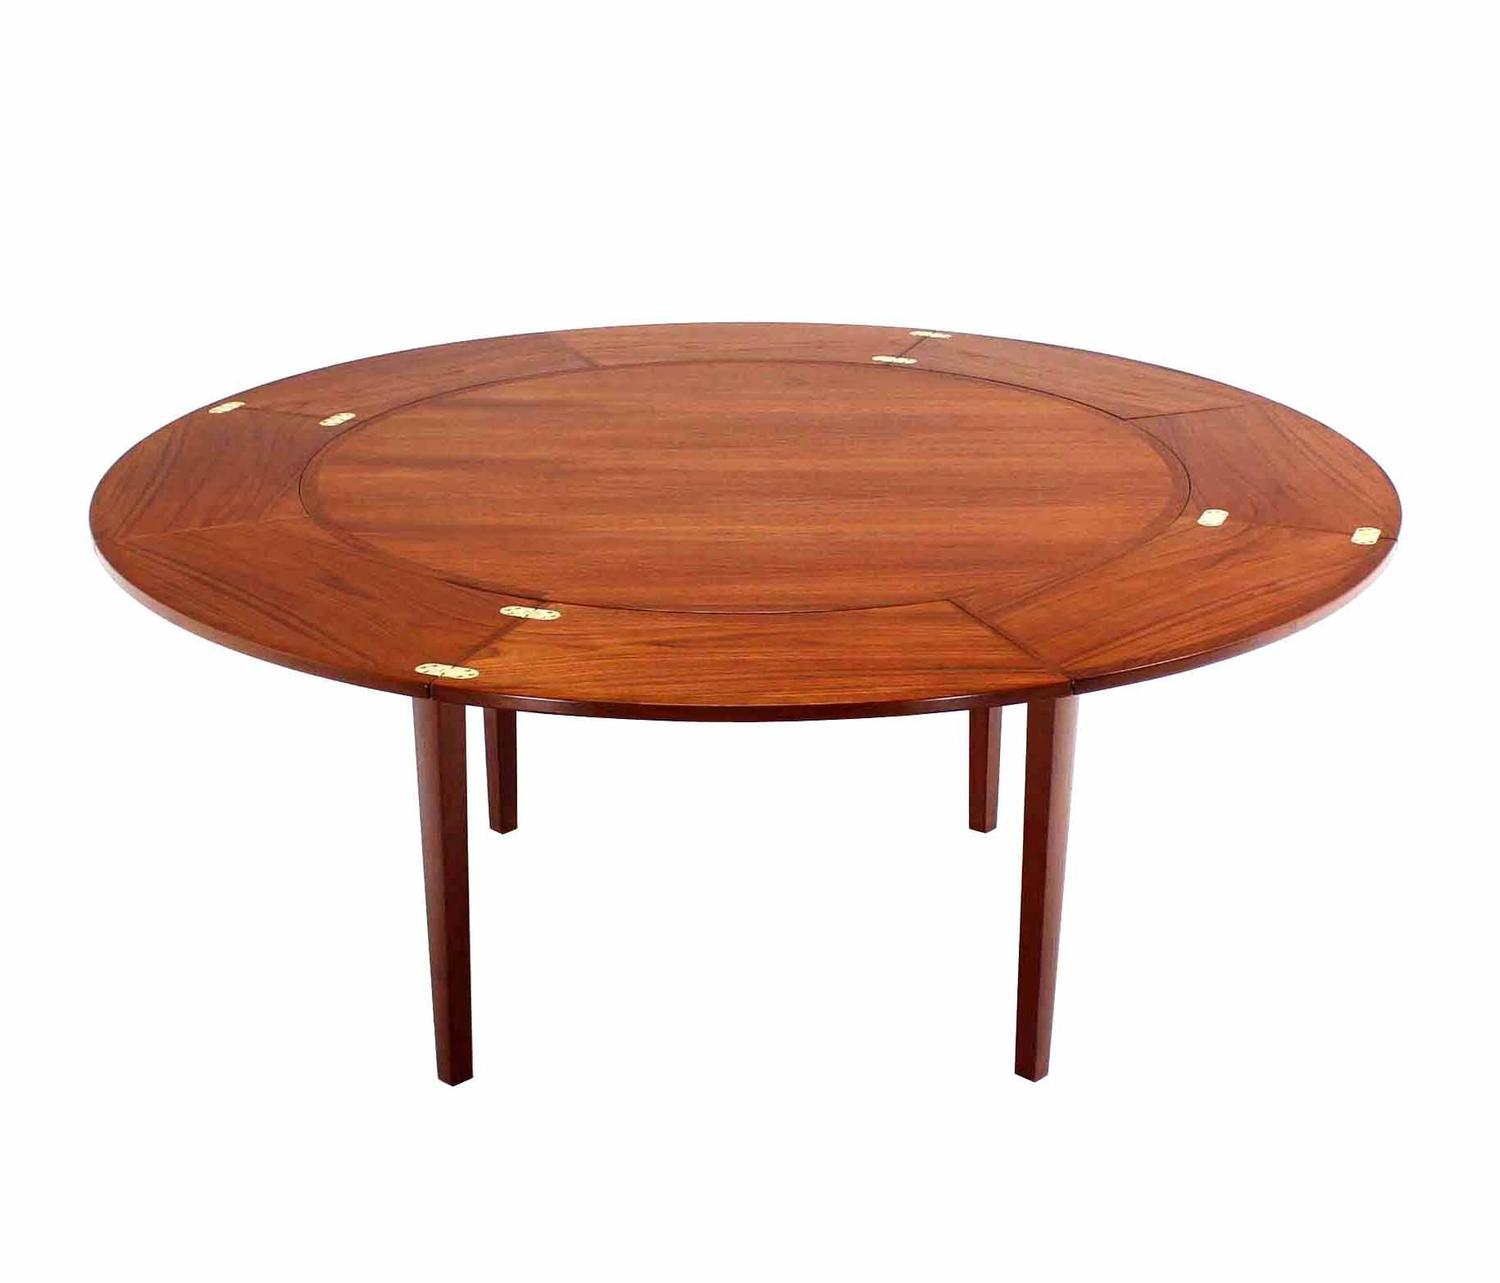 Rare Danish Modern Teak Round Expandable Top Dining Table  : IMG8278z from www.1stdibs.com size 1500 x 1283 jpeg 61kB